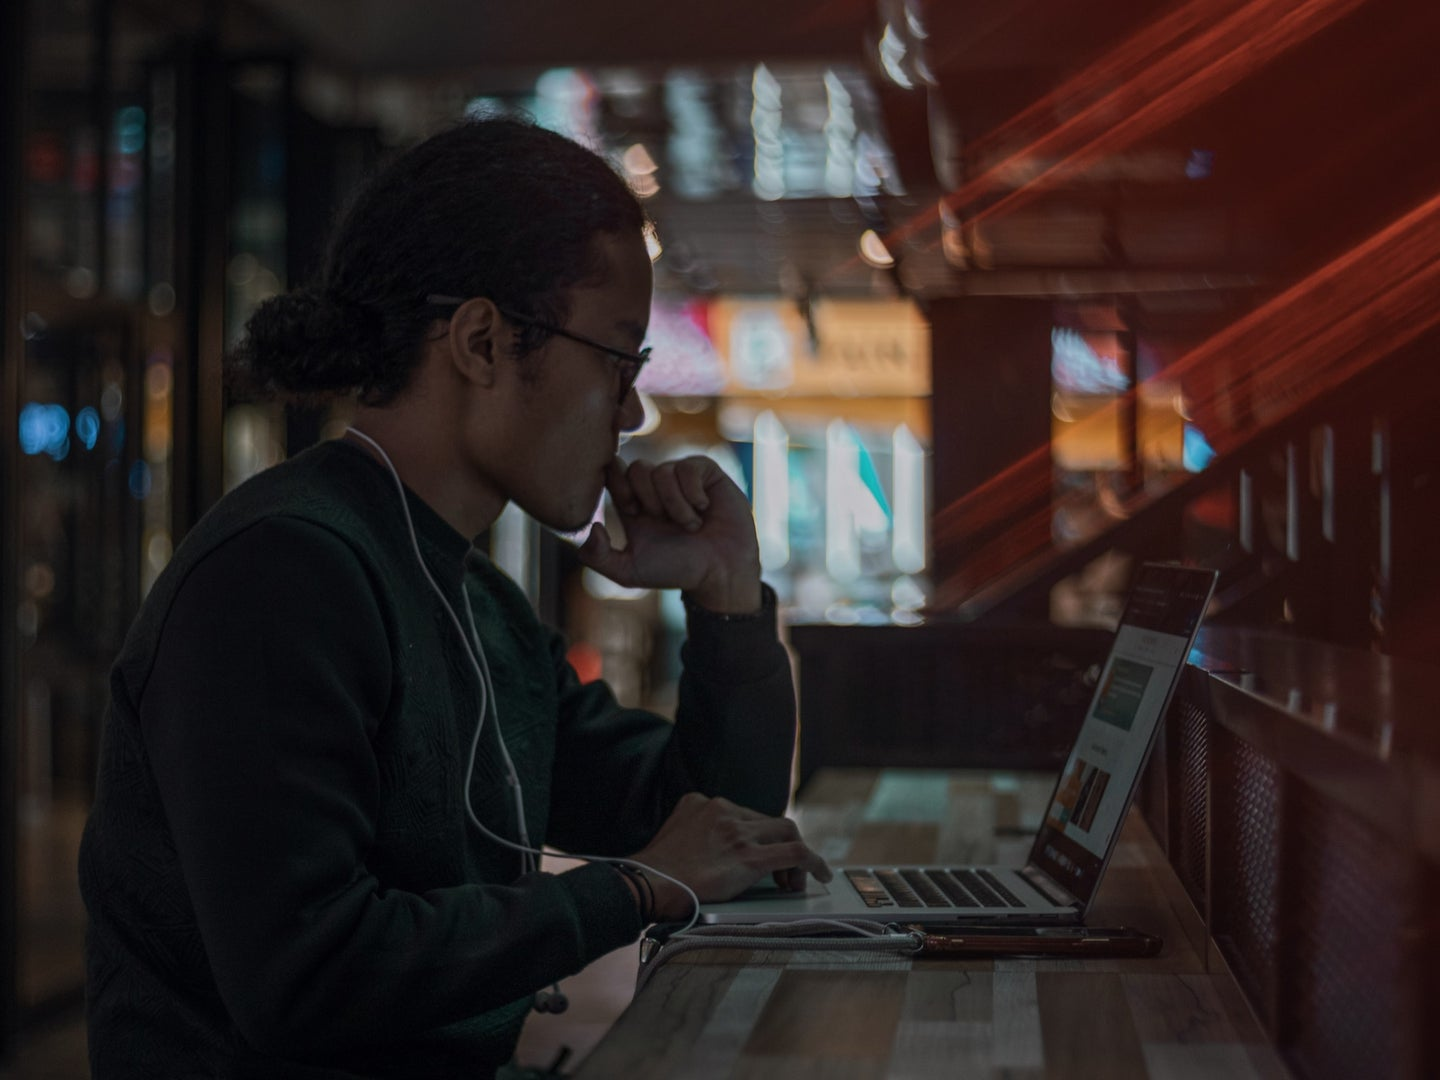 a person sitting in a cafe at night, using a laptop